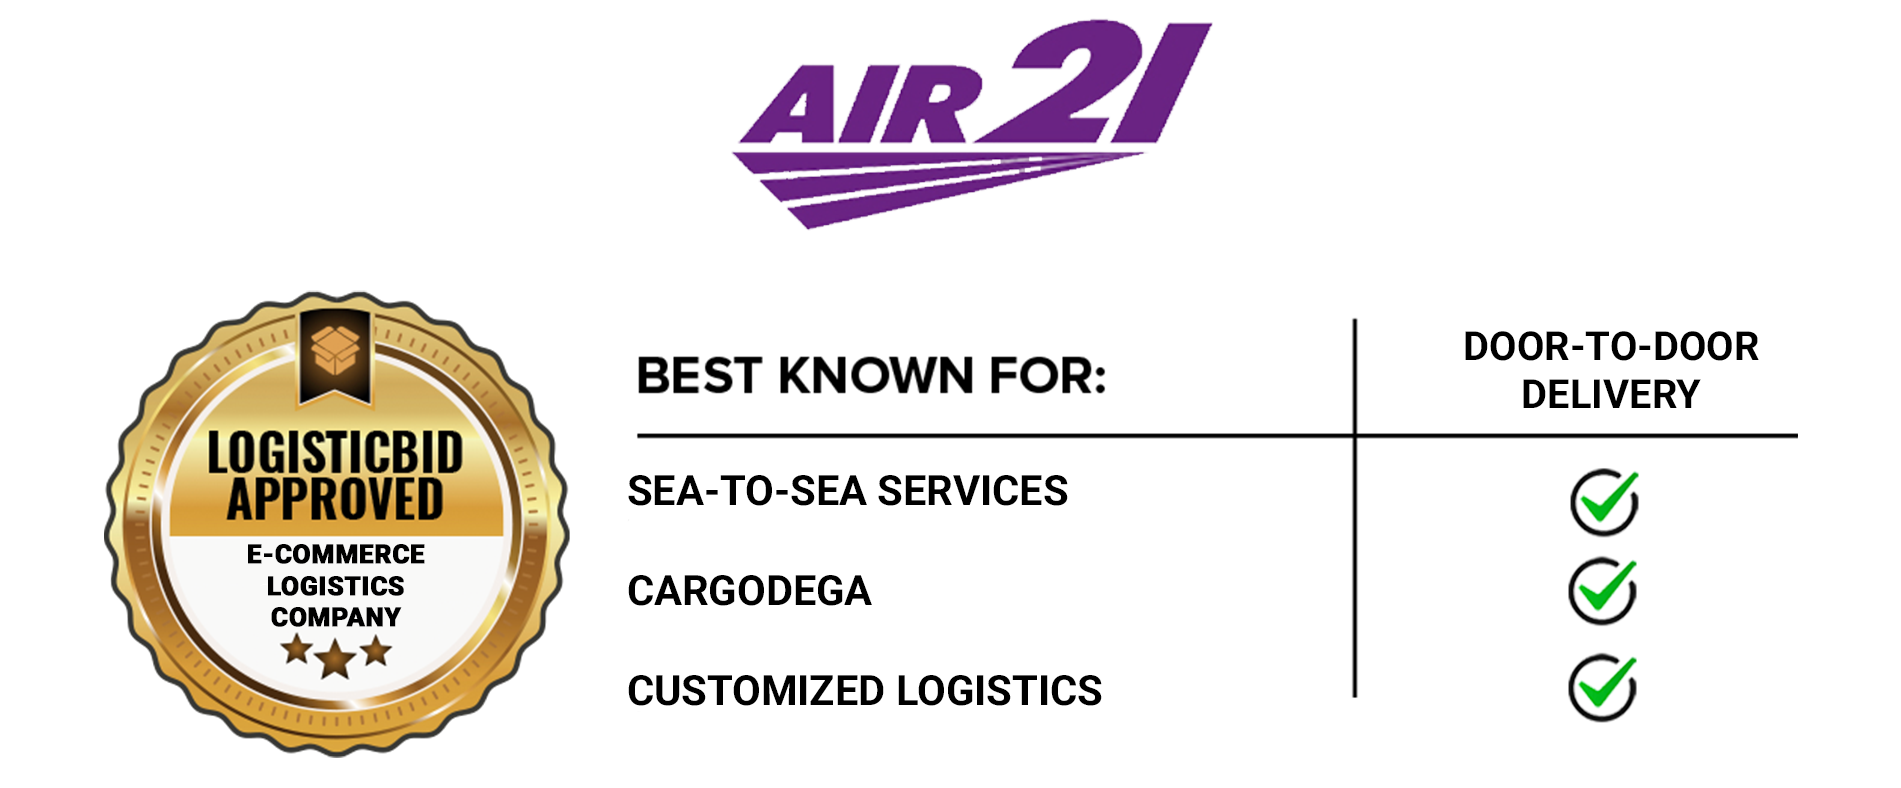 Trucking Services of Leading E-commerce Logistics Company - Air 21